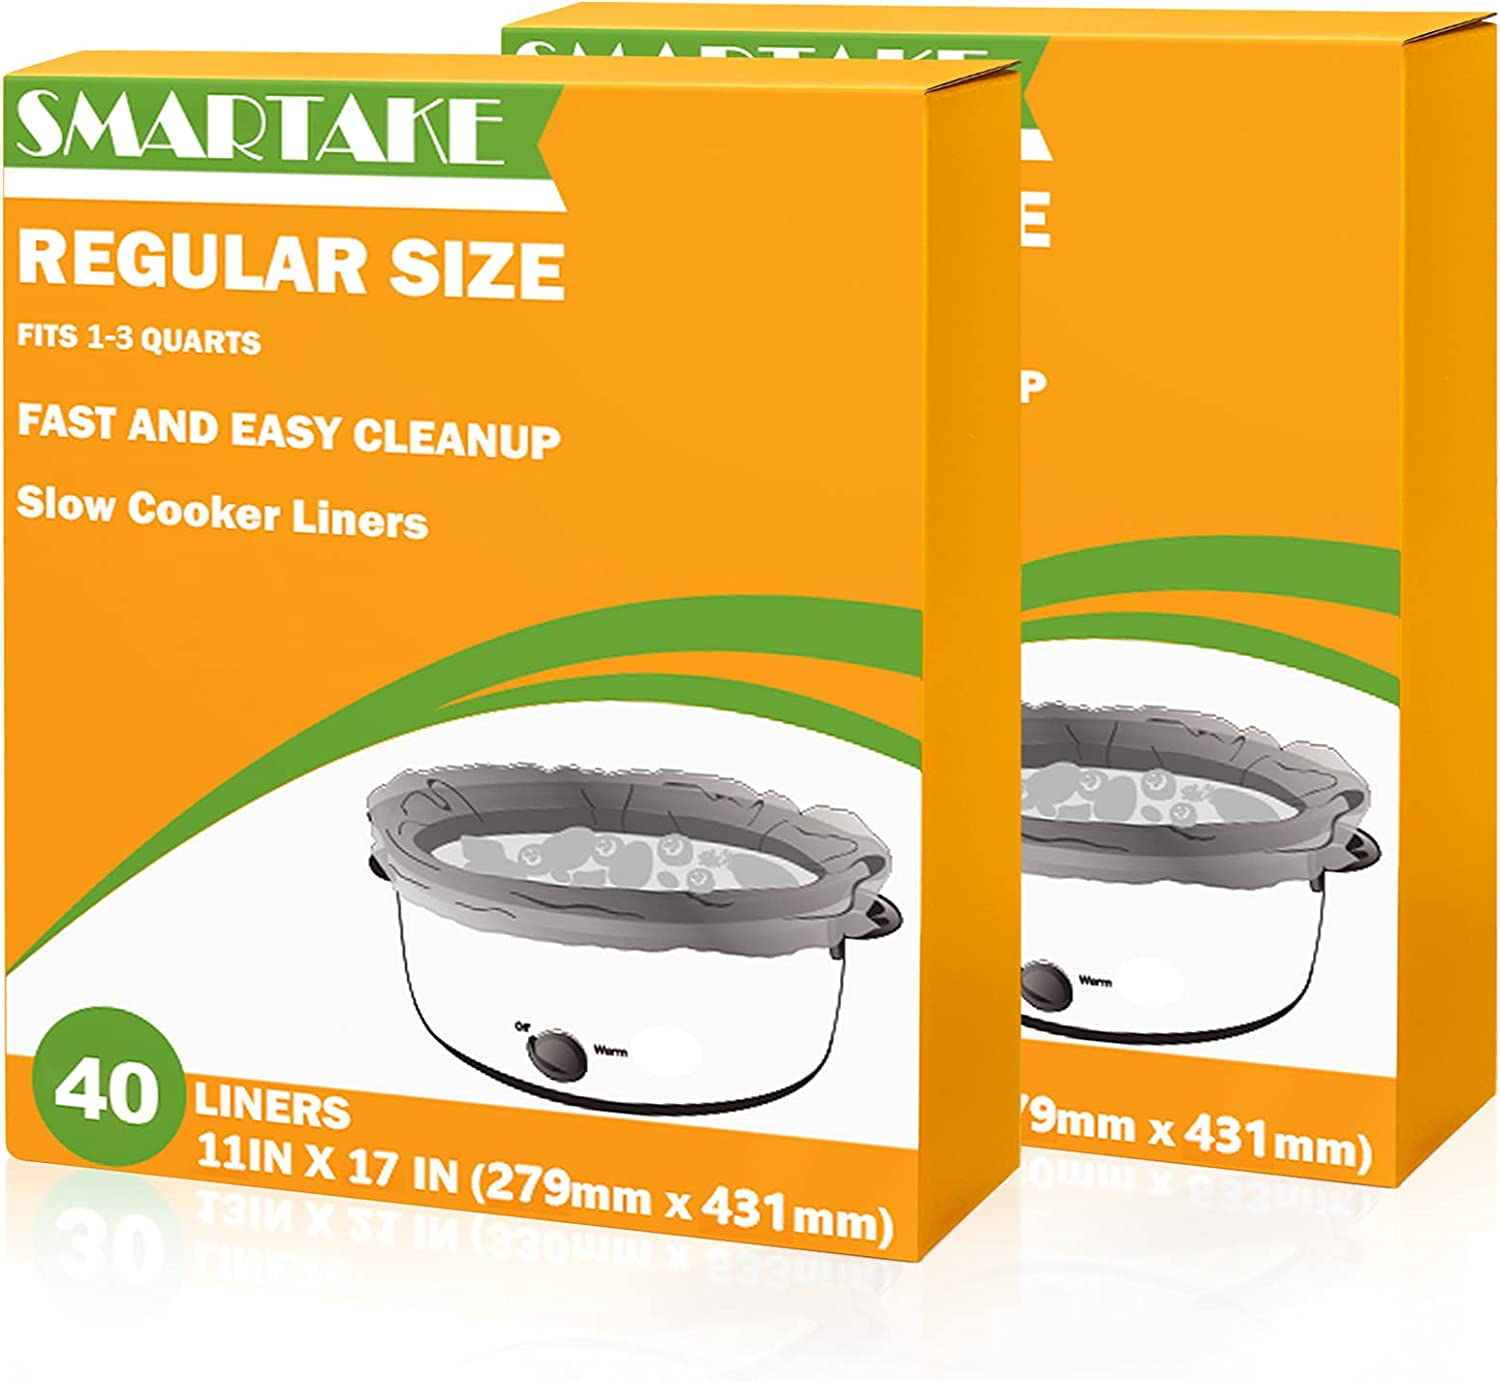 SMARTAKE Slow Cooker Liners, 11 × 17 Inches Disposable Cooking Bags, Easy Clean-Up Plastic Bags, Fit 1QT to 3QT, for Slow Cooker, Crockpot, Aluminum Cooking Trays, Pans, 2 Packs (80 Liners)